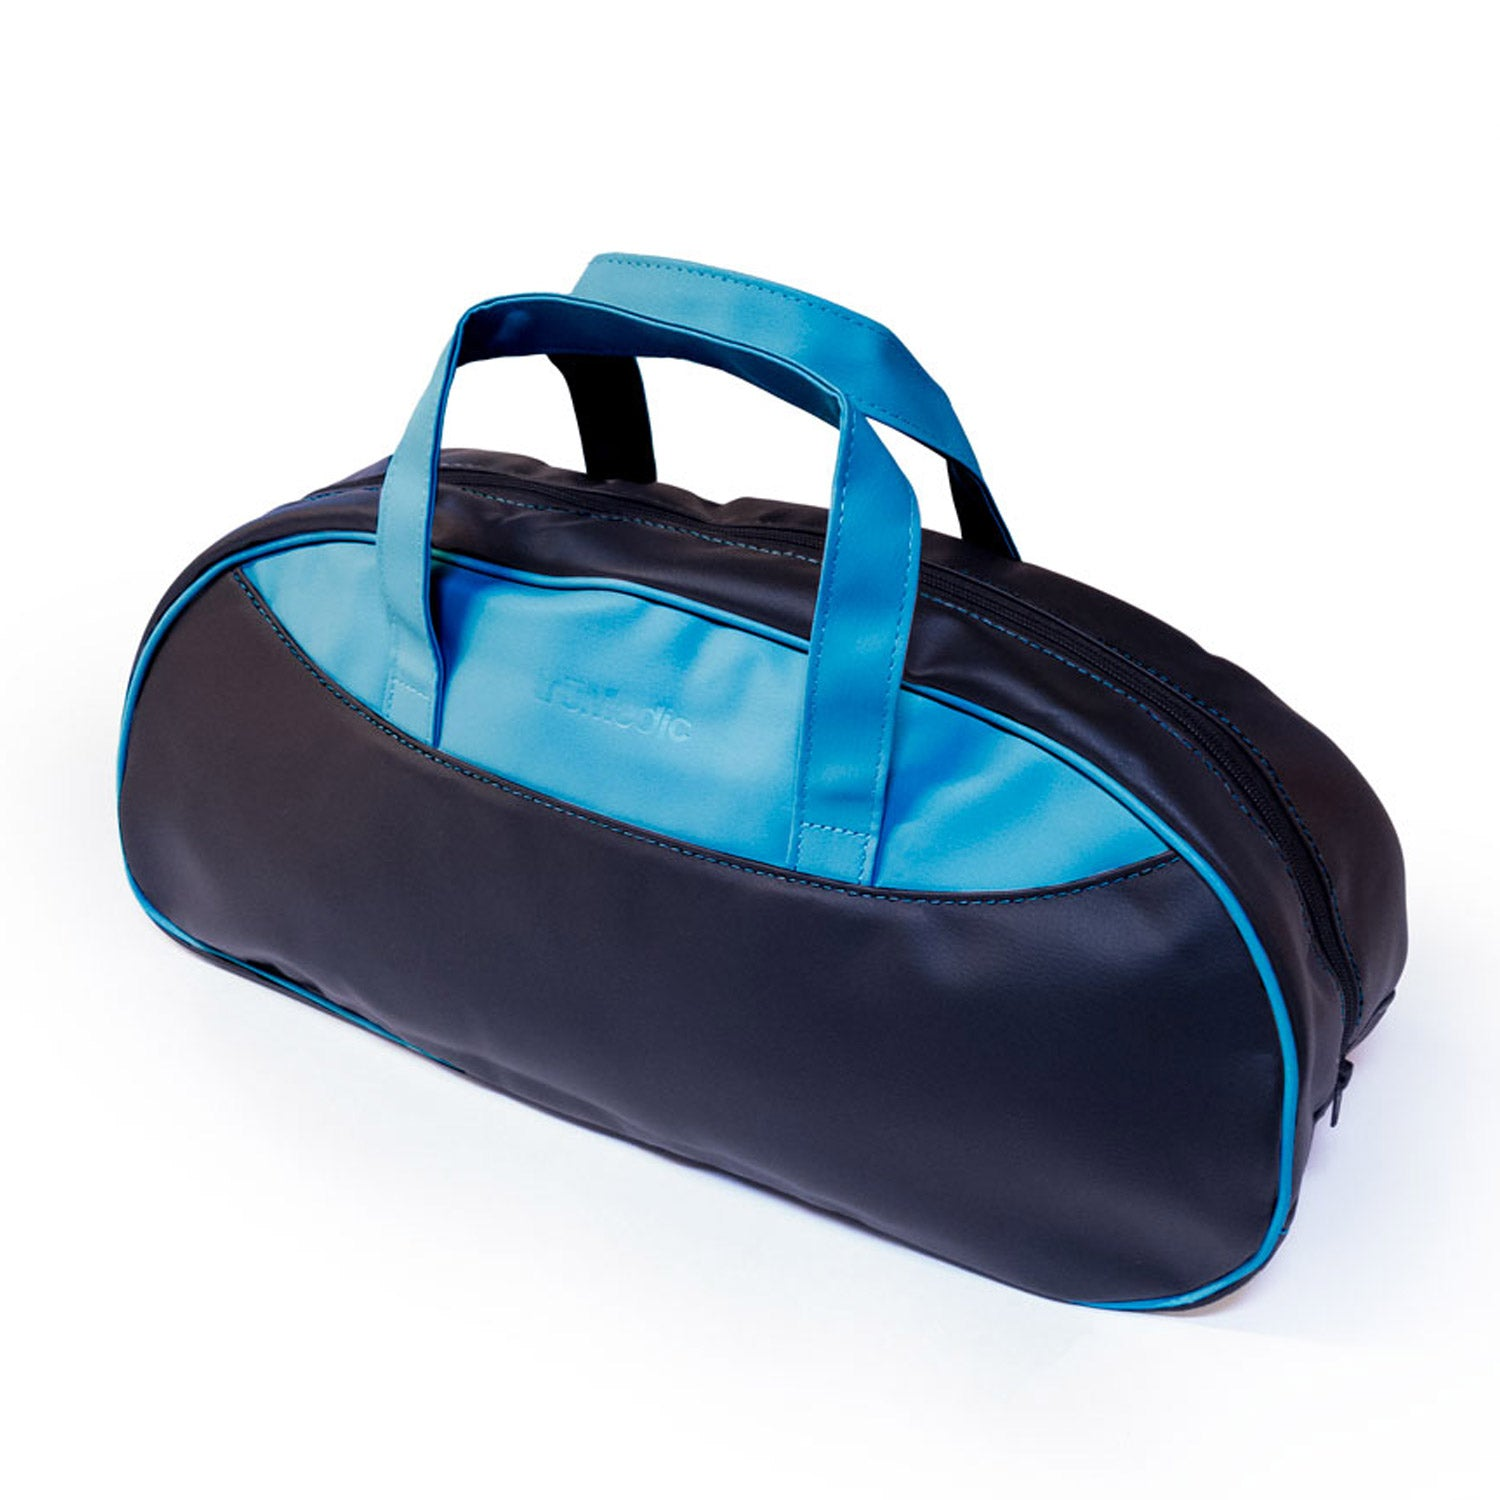 MagicHands Carrying Case